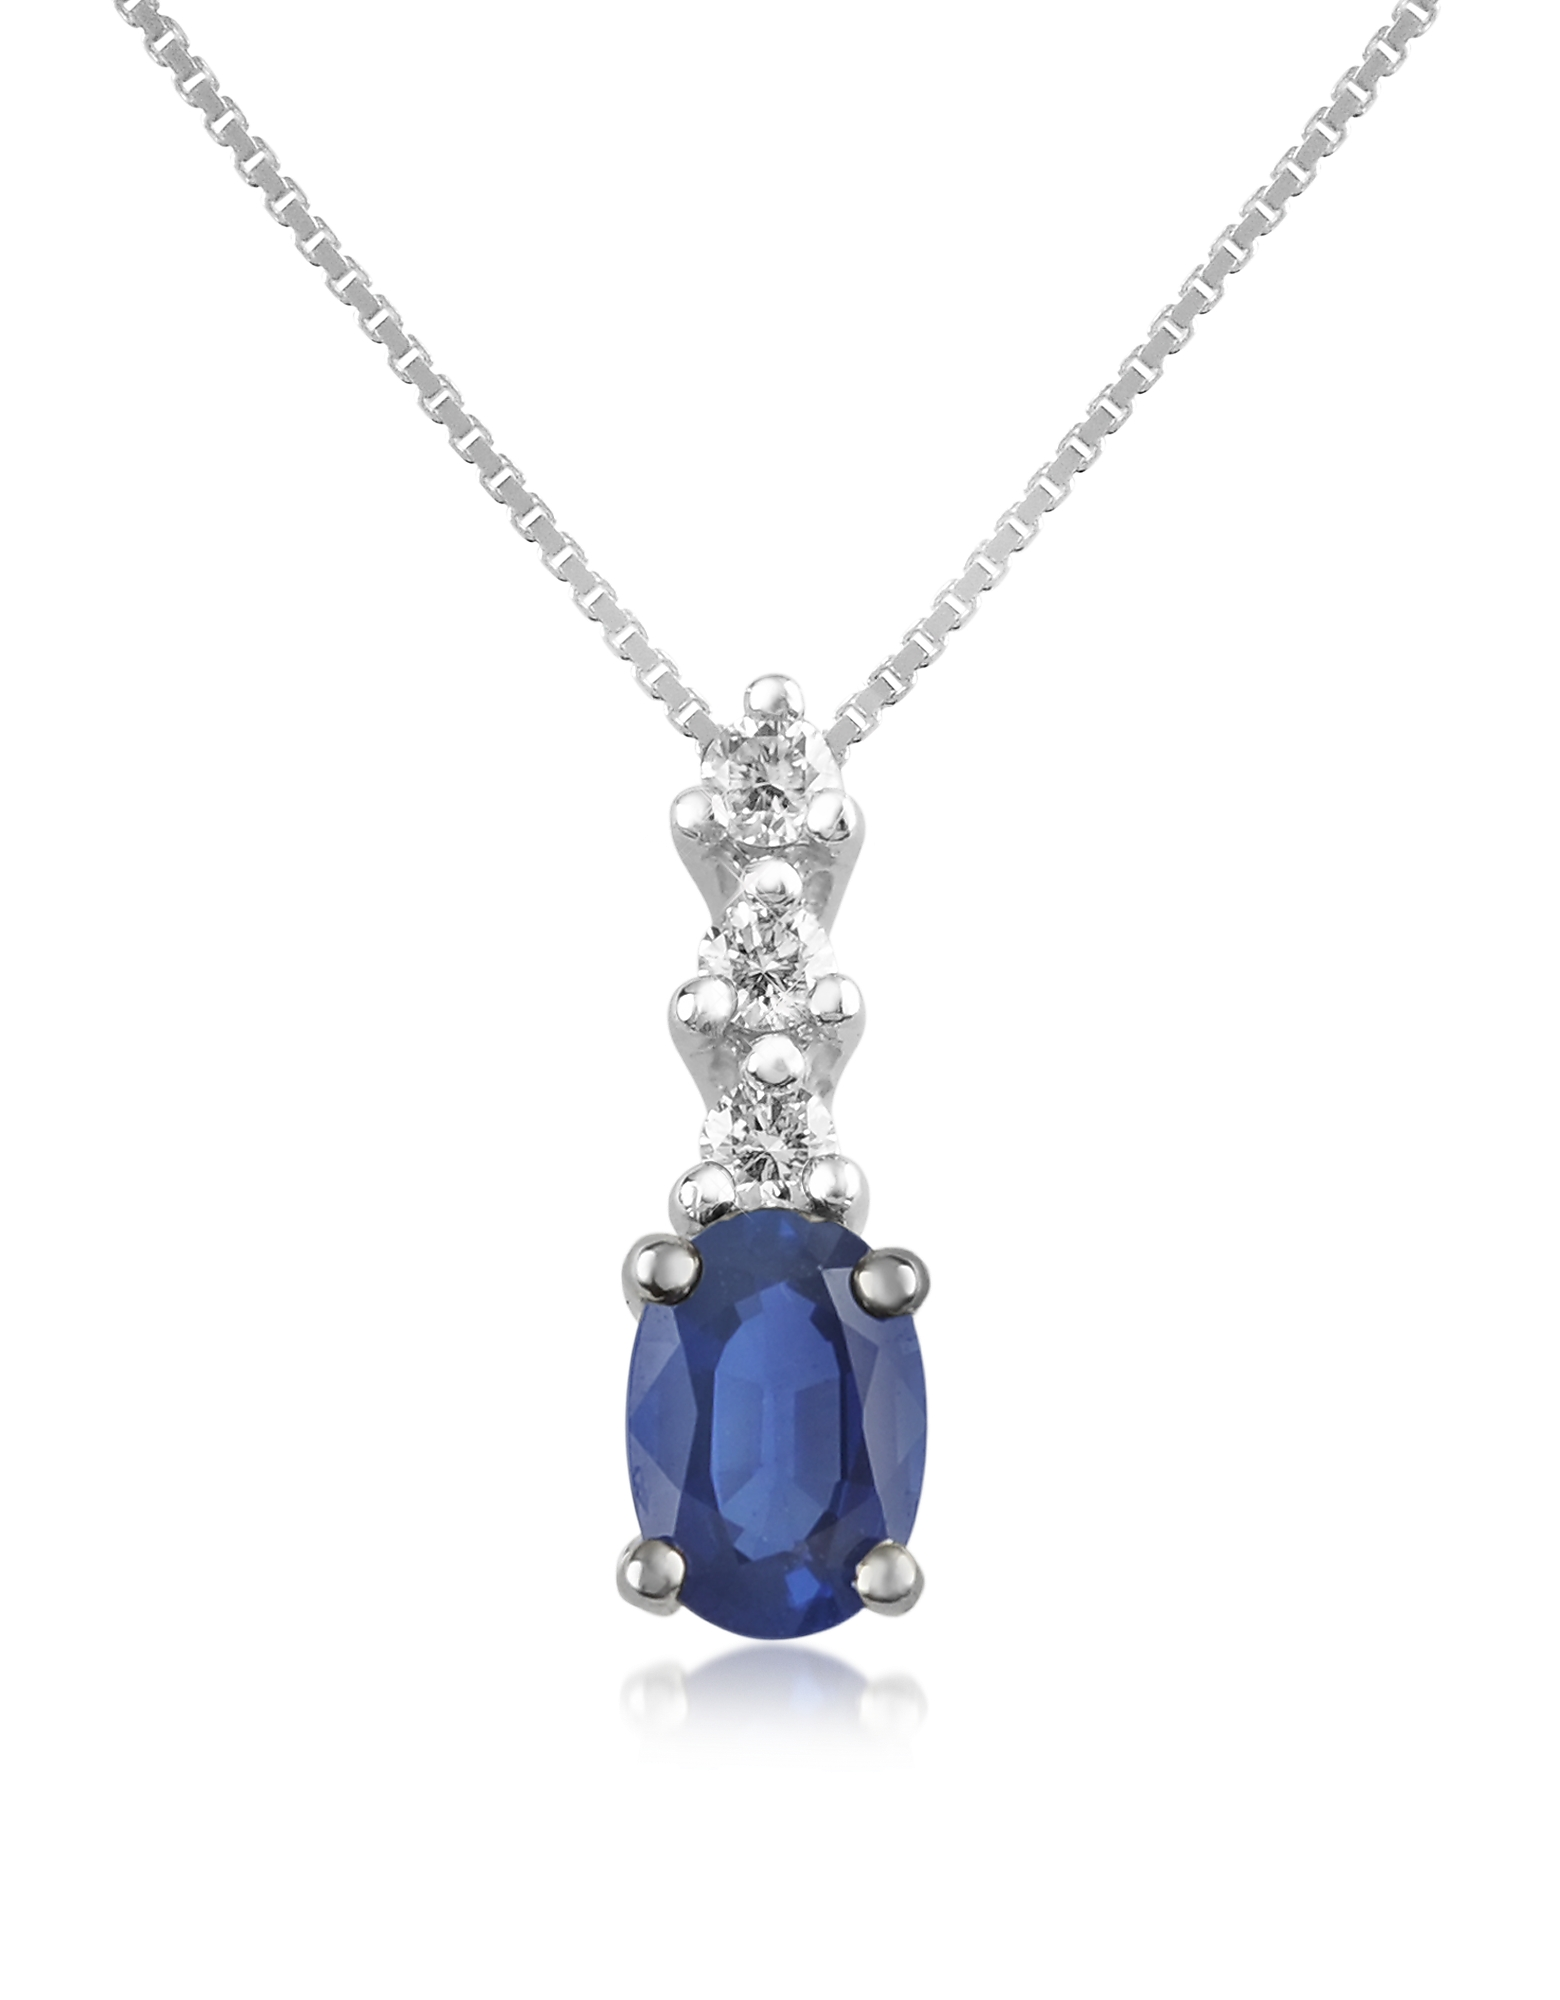 Incanto Royale Designer Necklaces, Diamond and Sapphire Drop 18K Gold Pendant Necklace